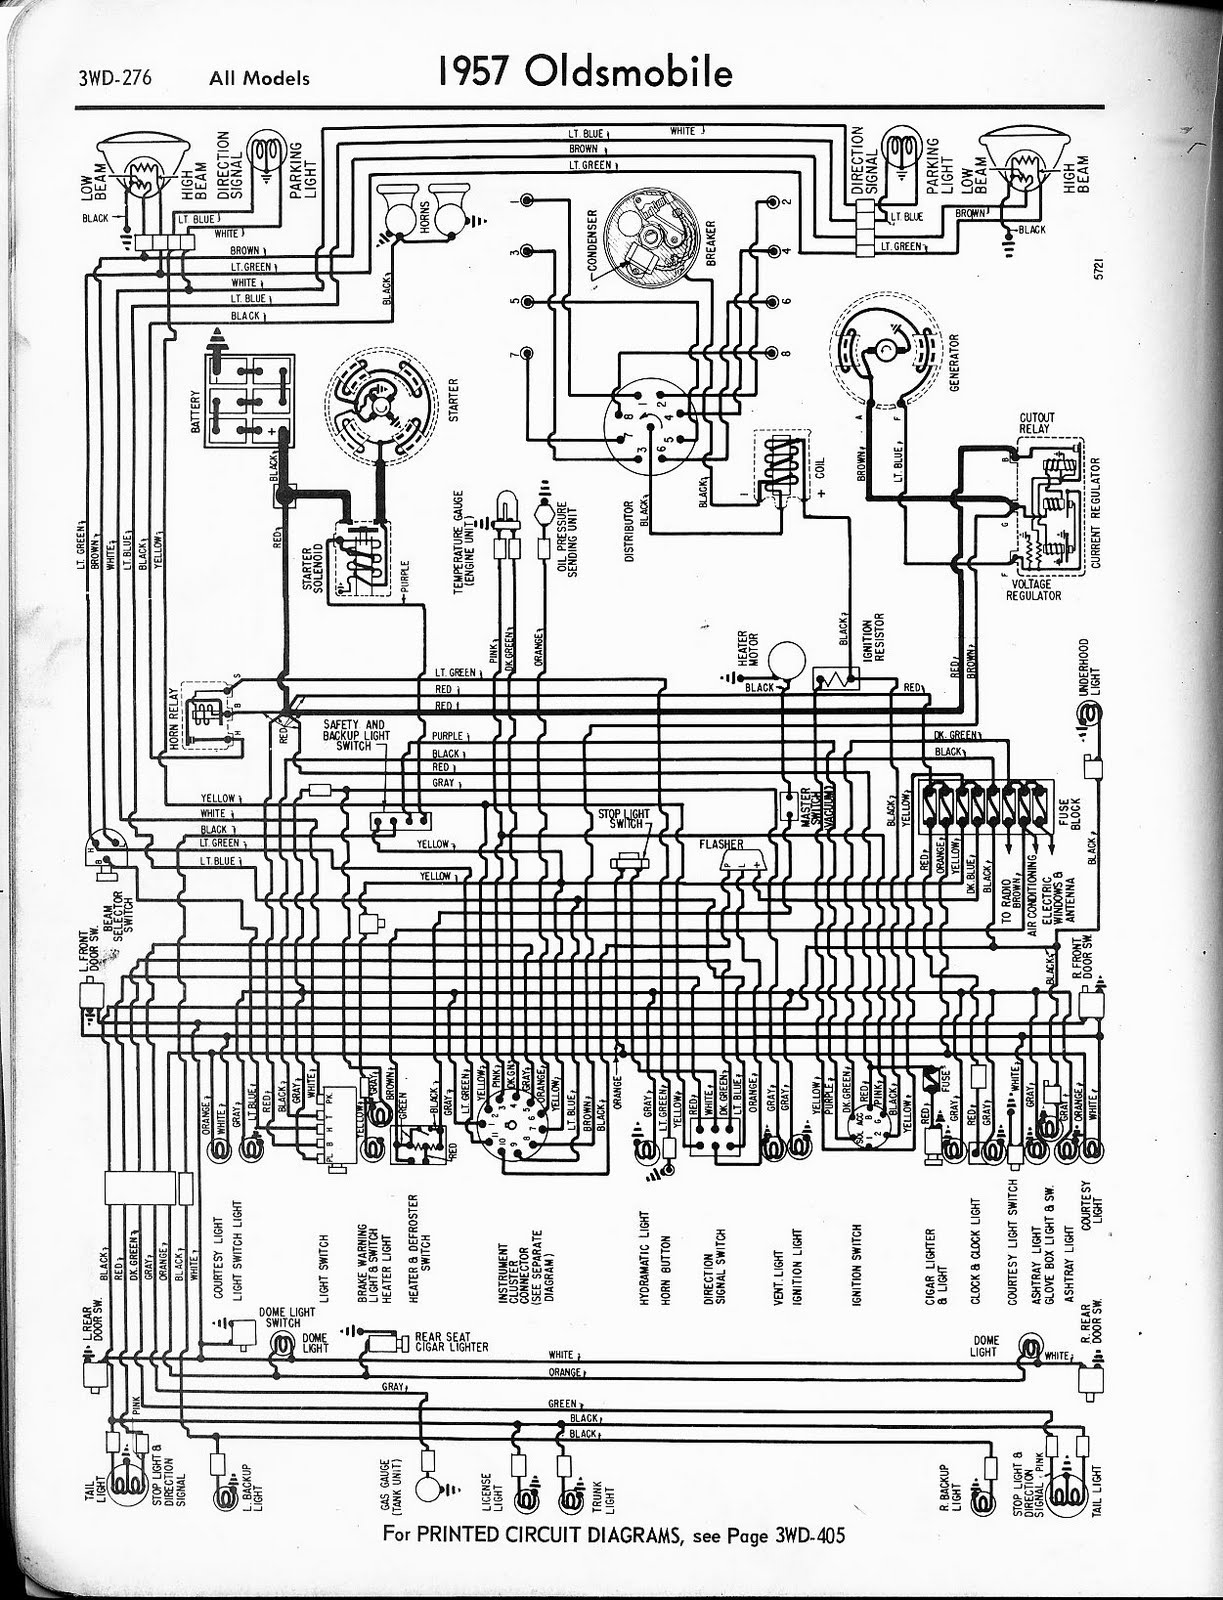 Wiring Harness For Truck Box Simple Guide About Diagram Climatrol Furnace Free Auto 1957 Oldsmobile